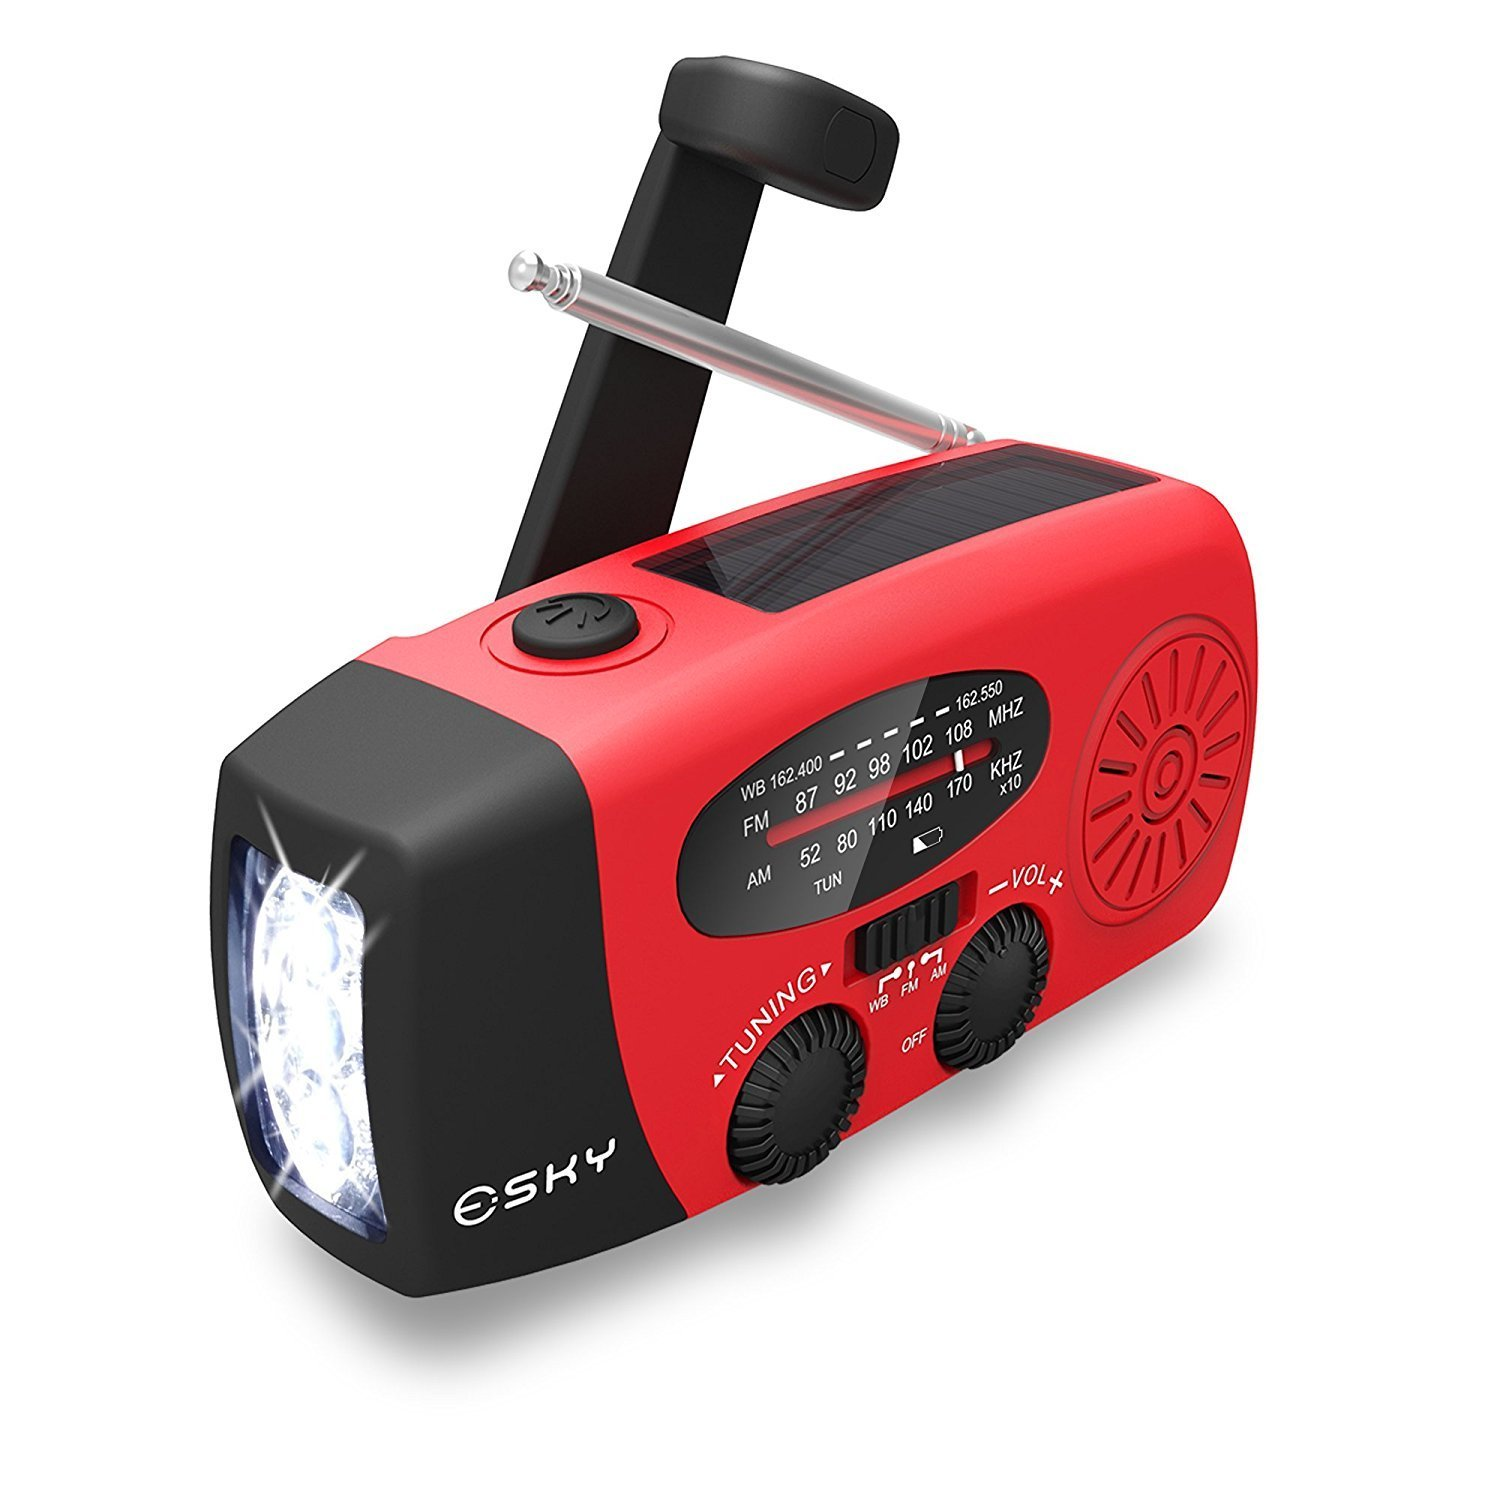 Esky Emergency Solar Hand Crank Radio, AM FM WB Weather Radio LED Flashlight Smart Phone... by Esky